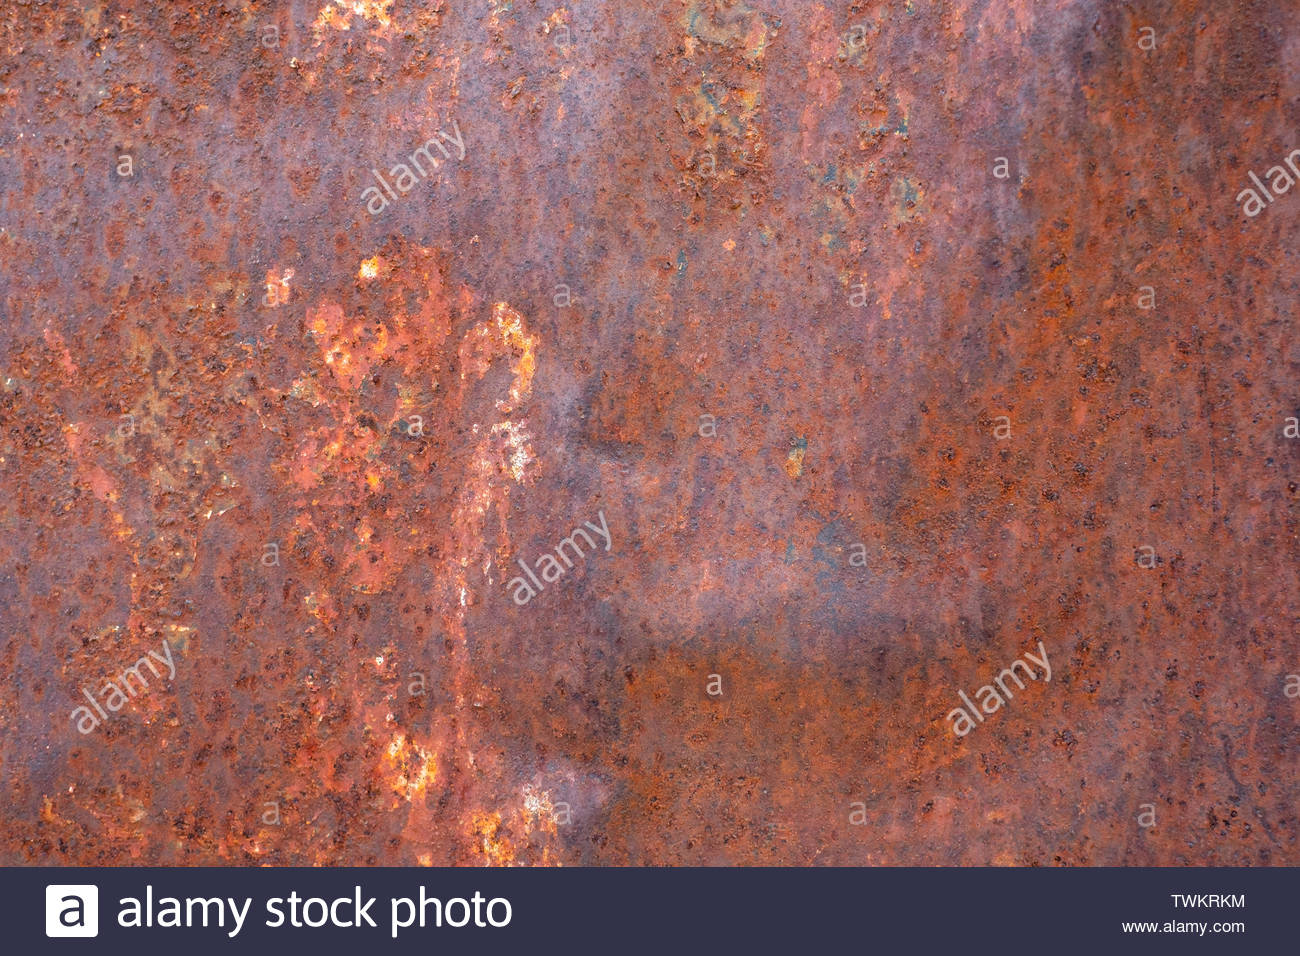 close up rust on surface of the old iron rusty metal steel metal sheet board abstract art background TWKRKM